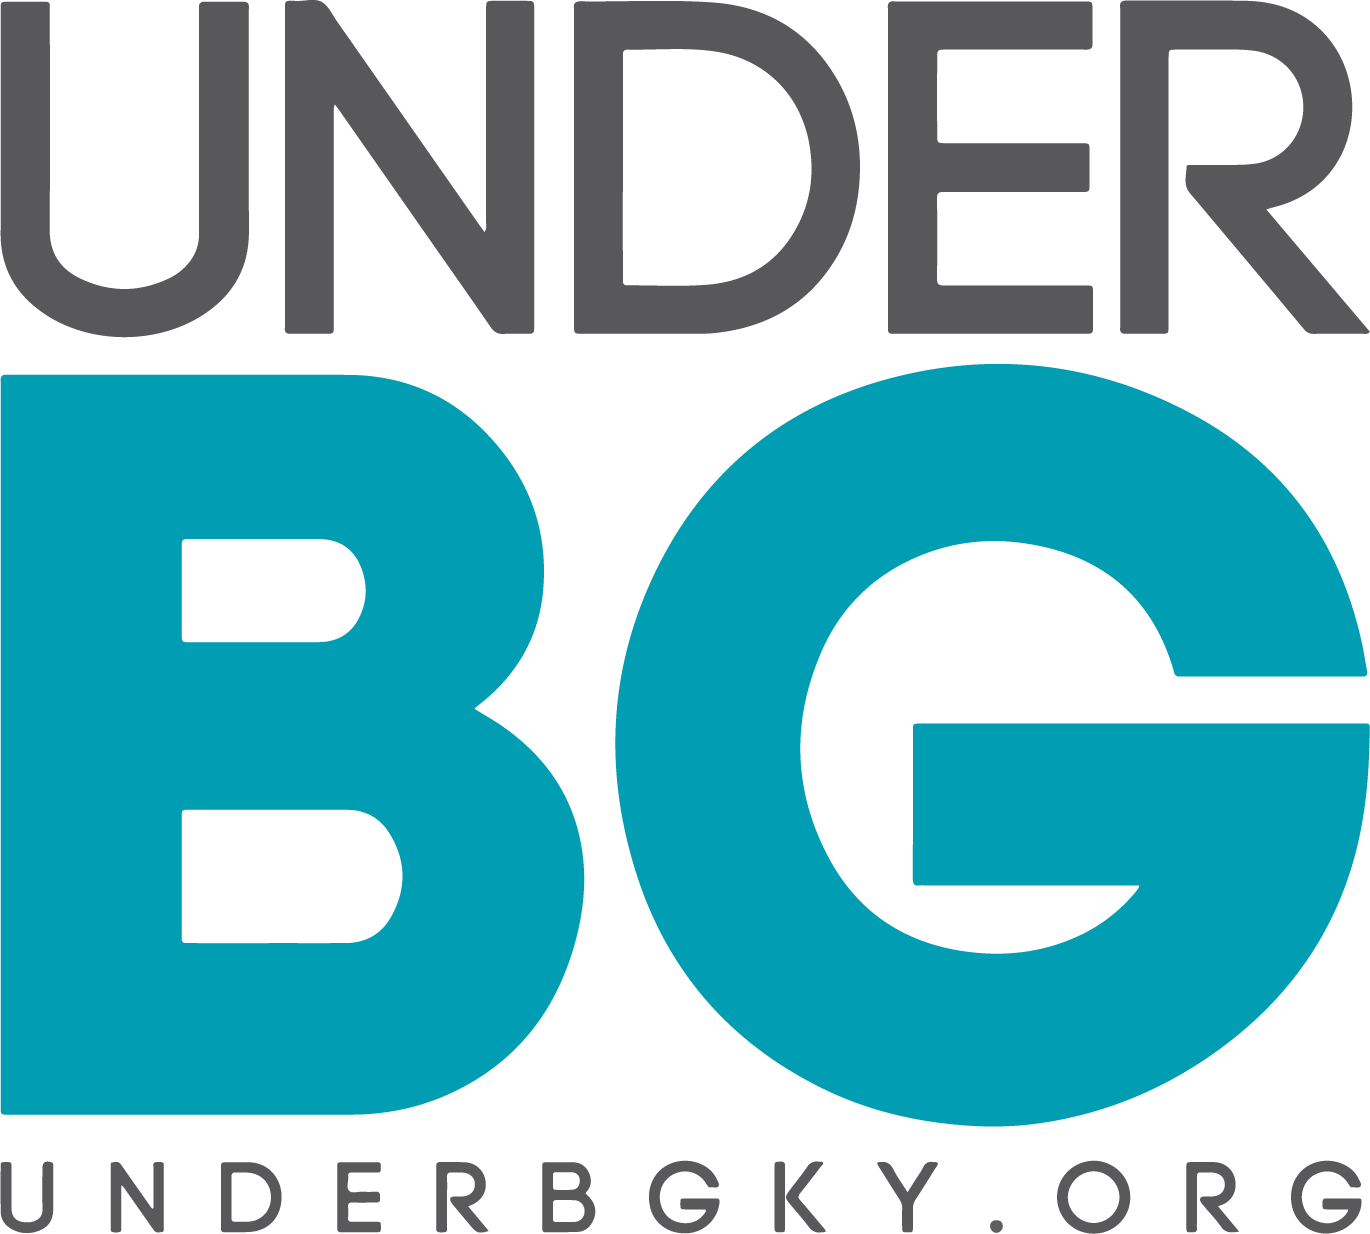 UnderBGKY